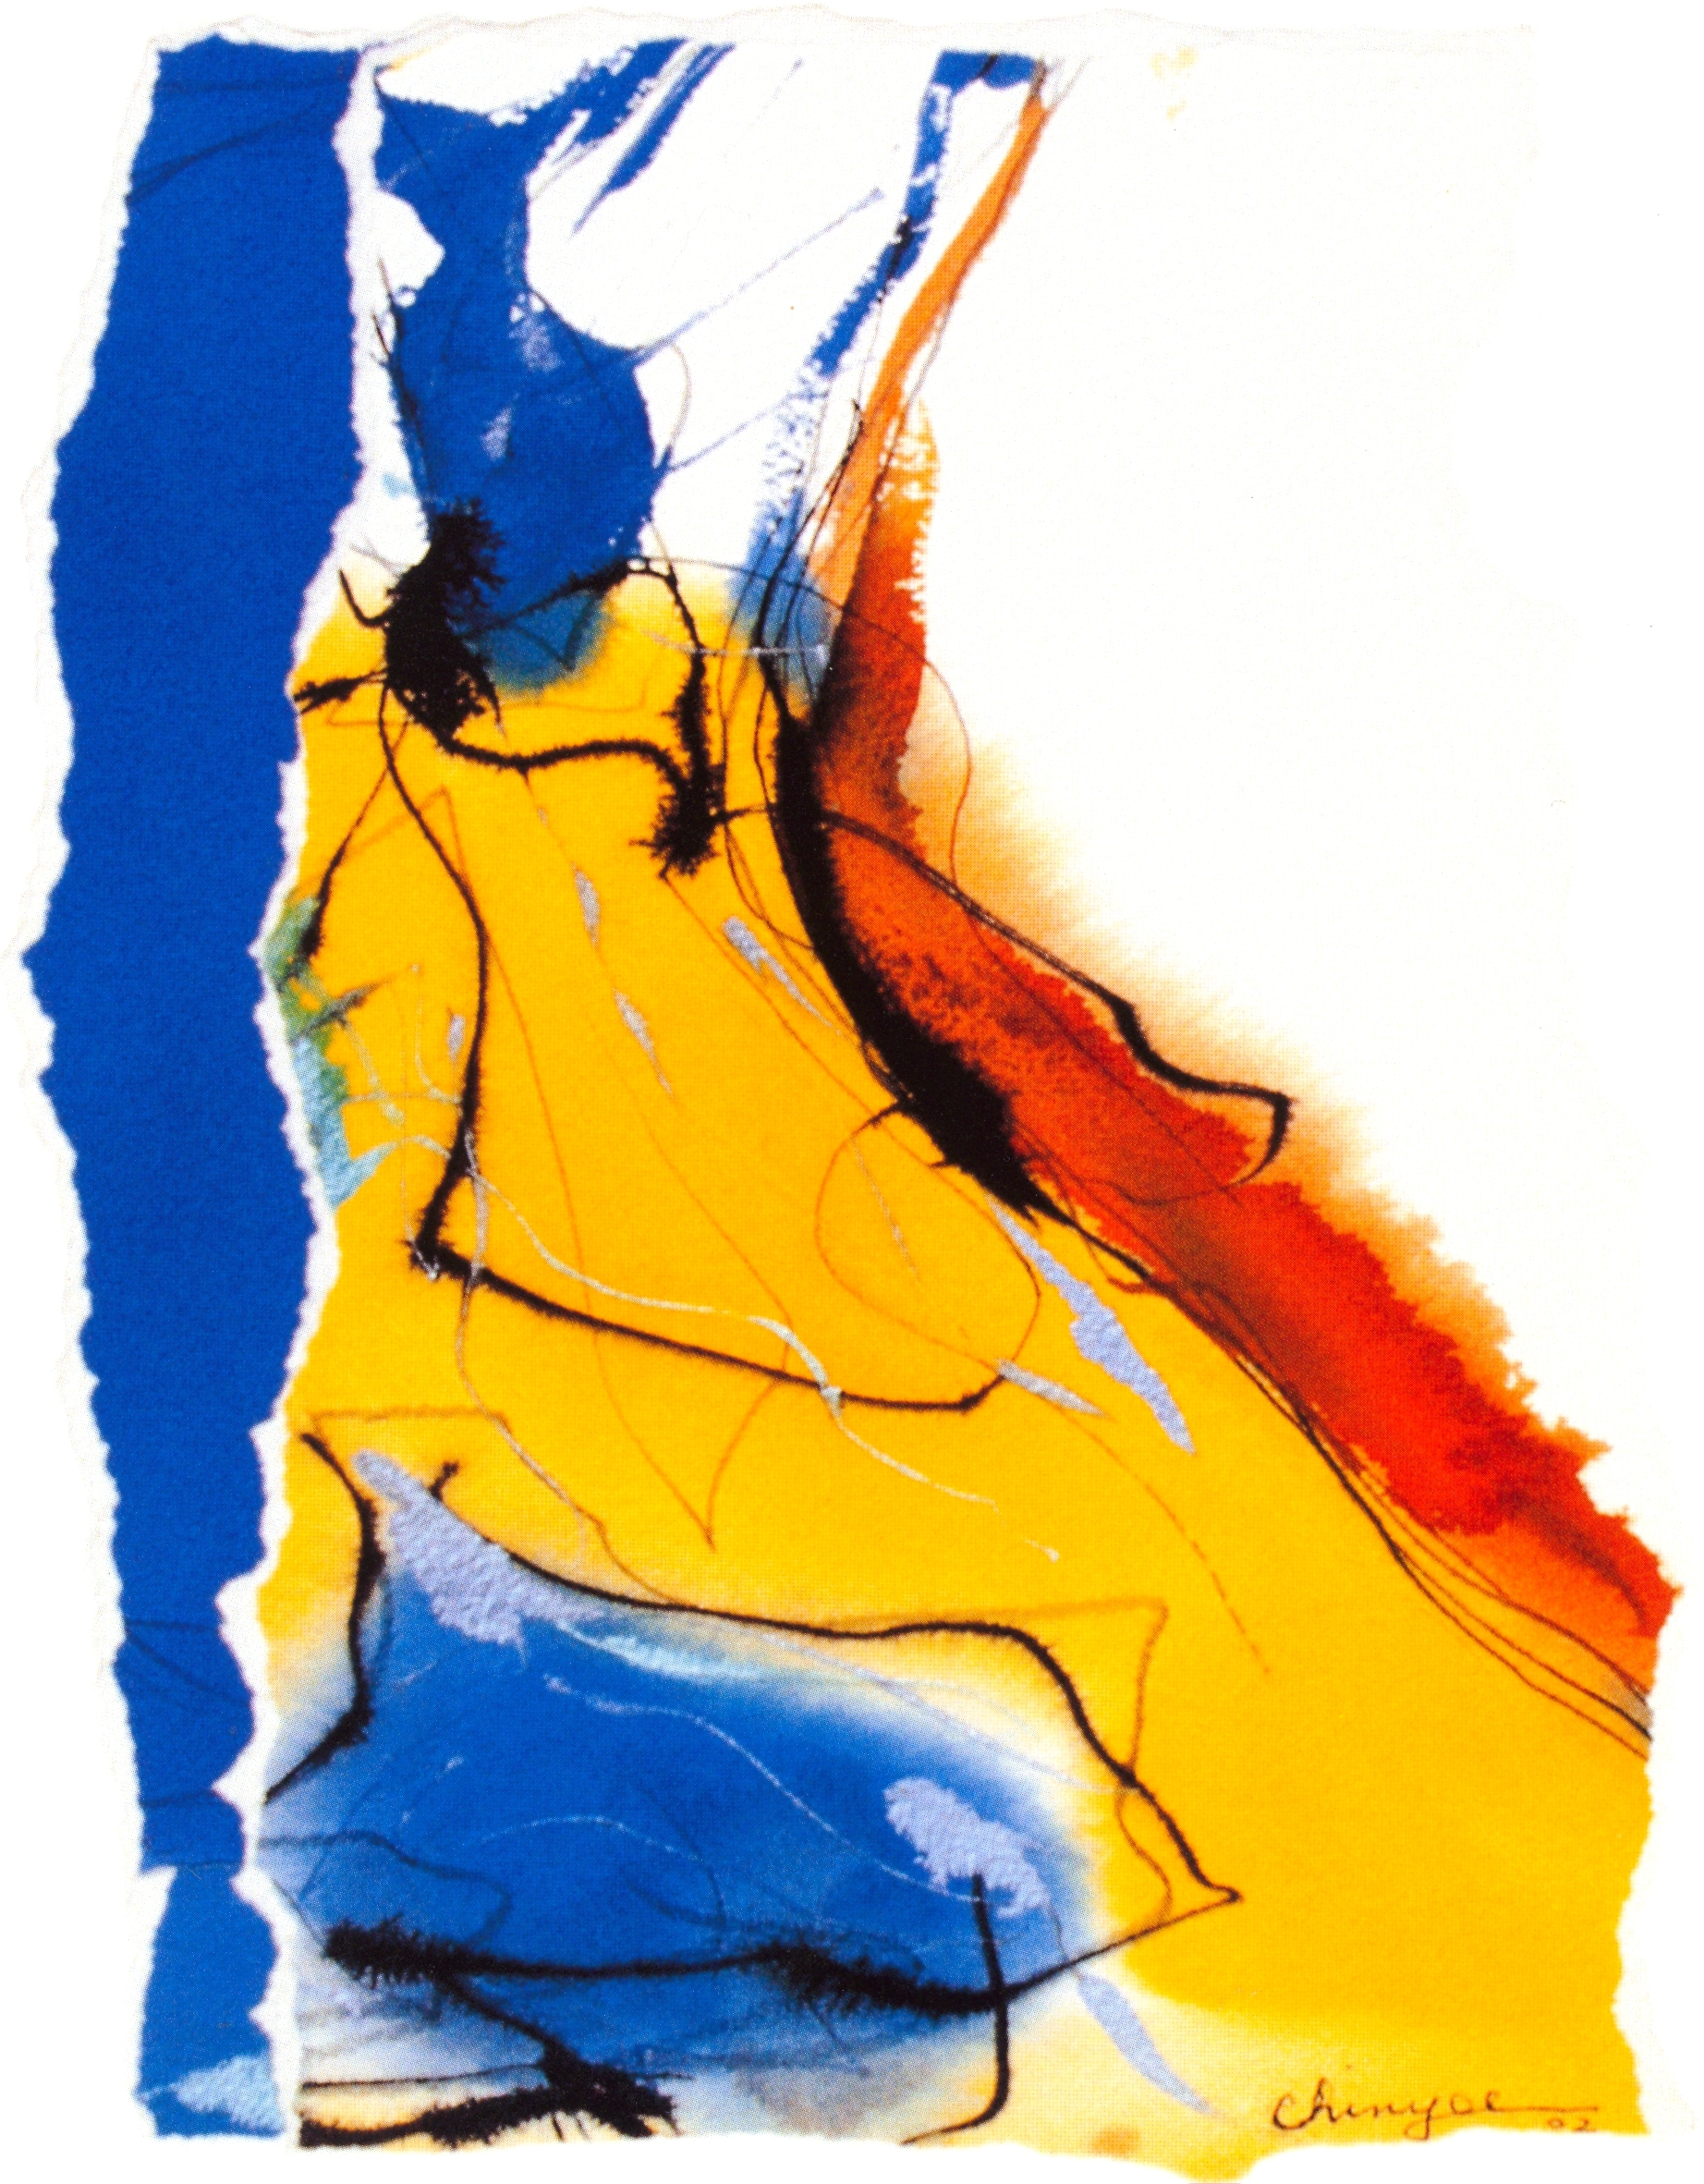 """Chinyee,   Rephrasing #204/02,   2002, Watercolor, Paper on Board, 14"""" x 11"""""""